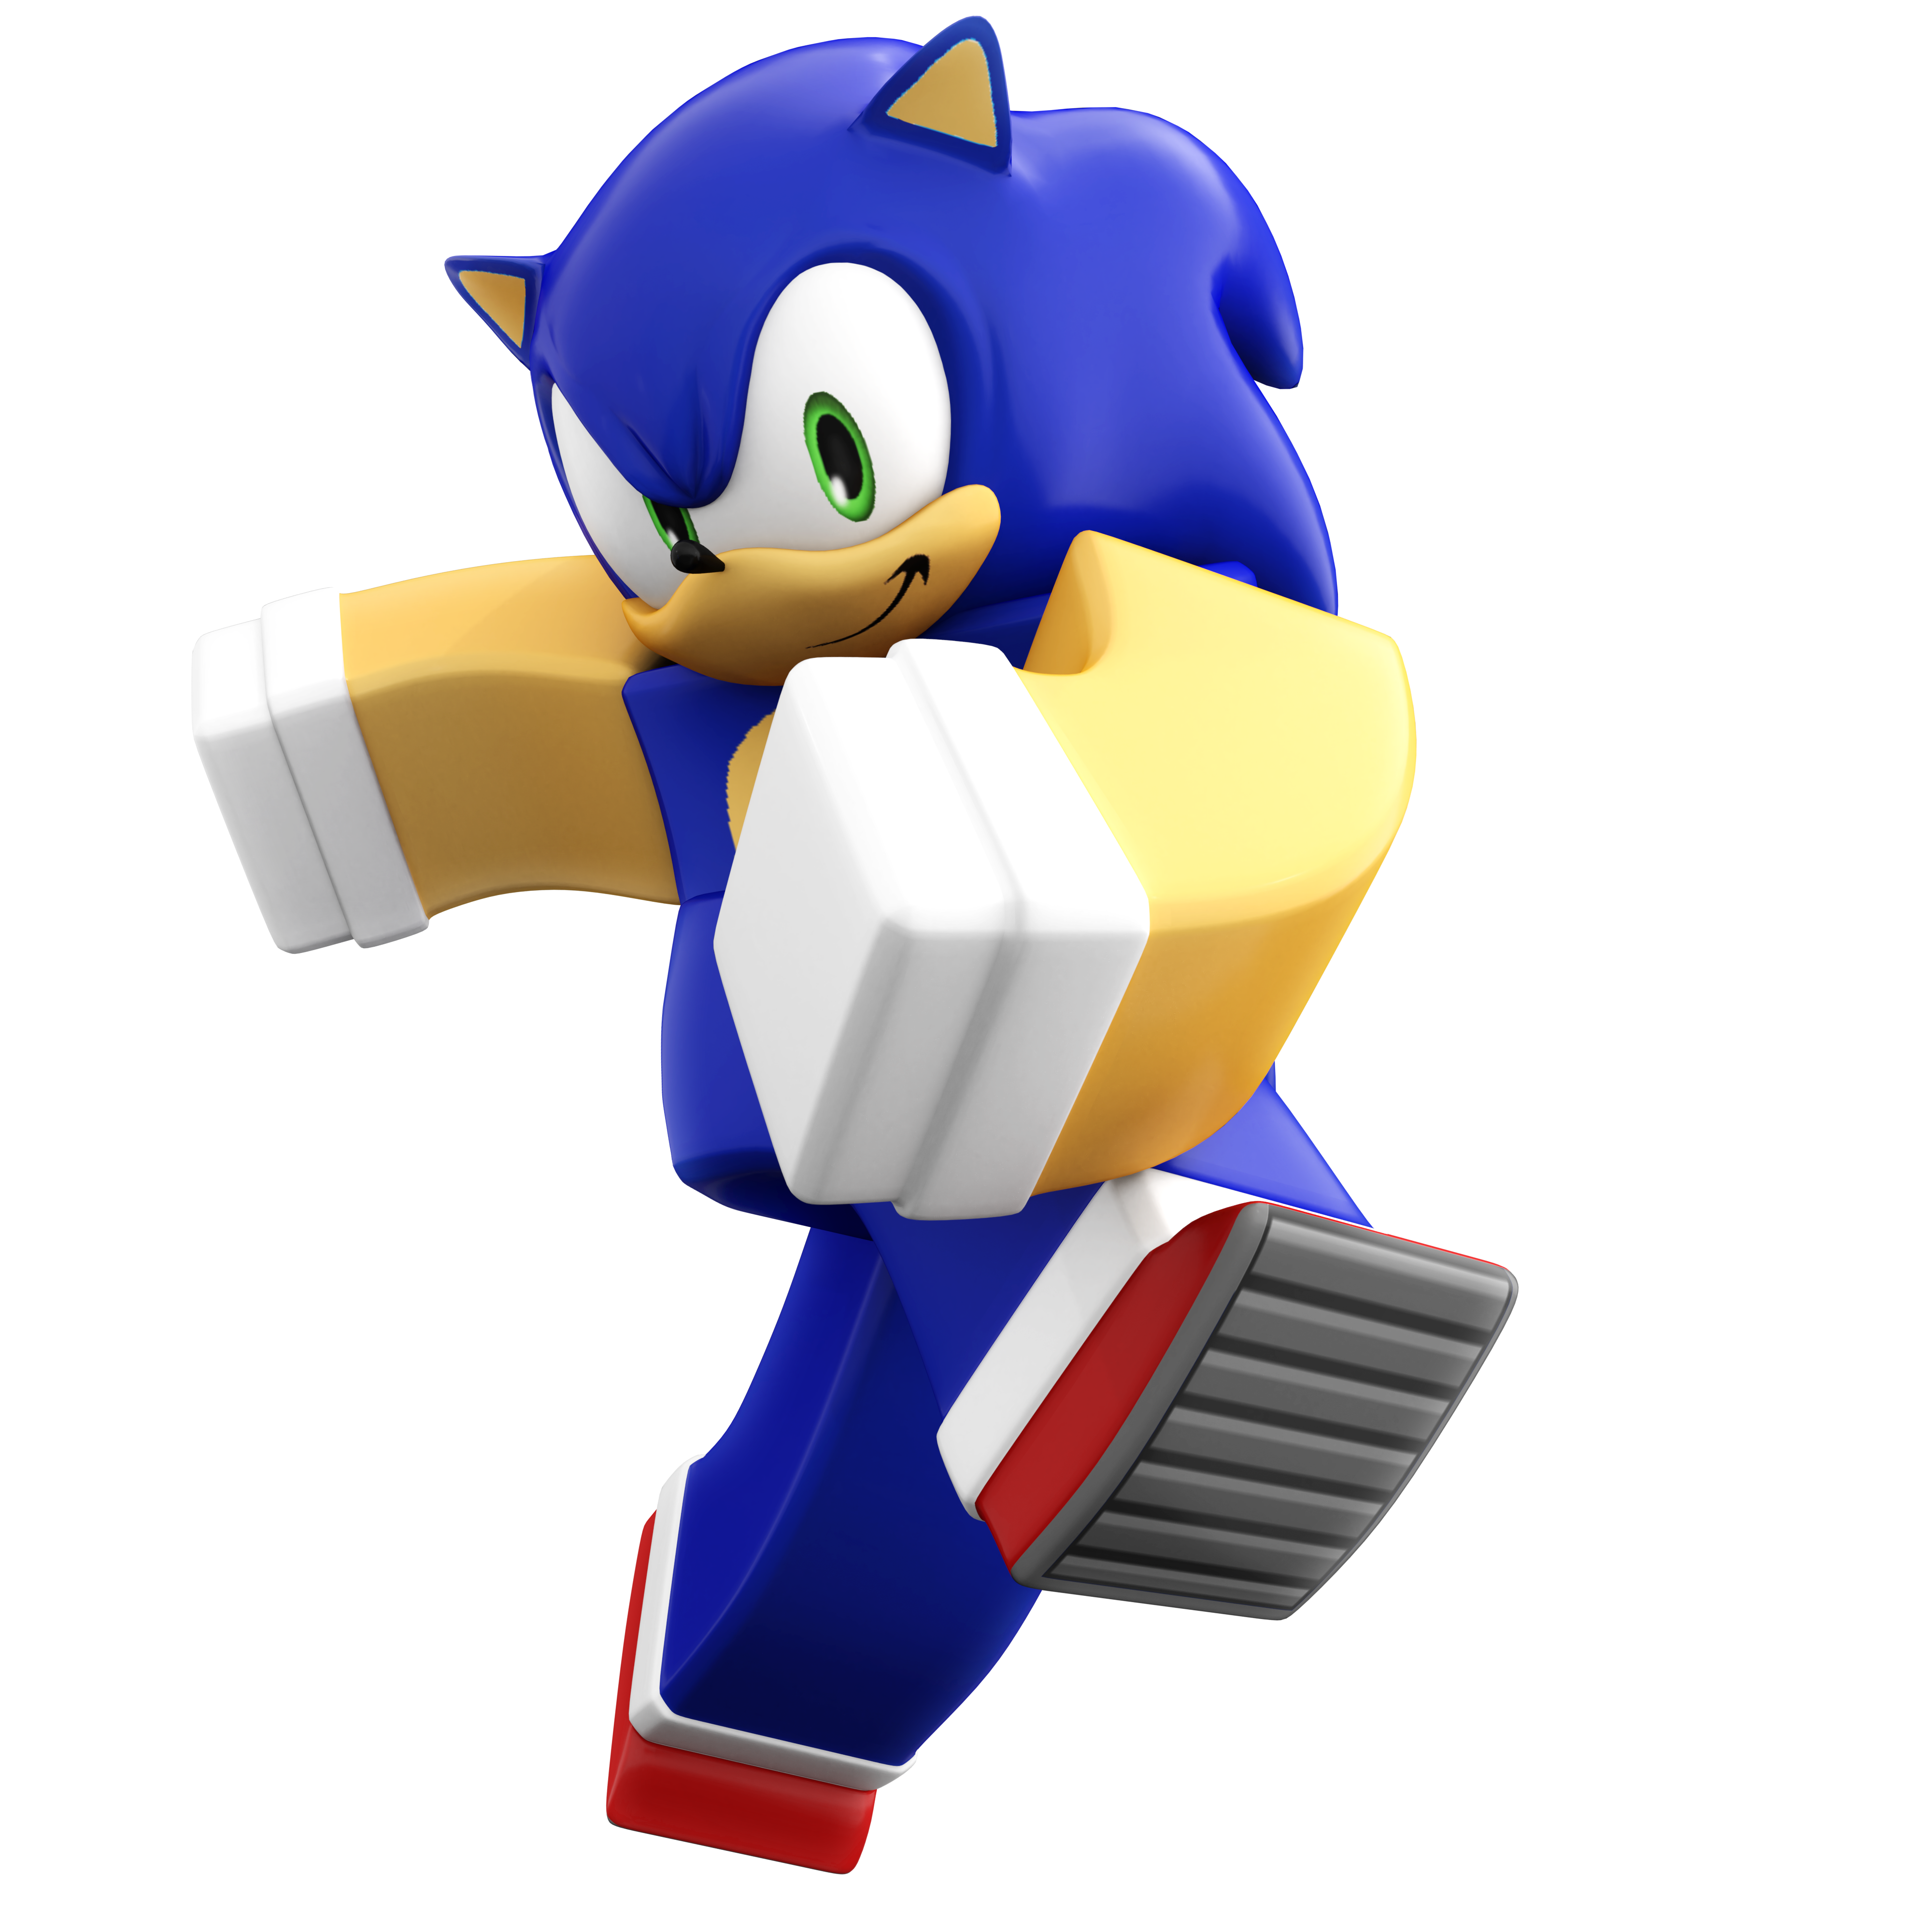 Sonic The Roblox Hedgehog By Jaysonjeanchannel On Deviantart